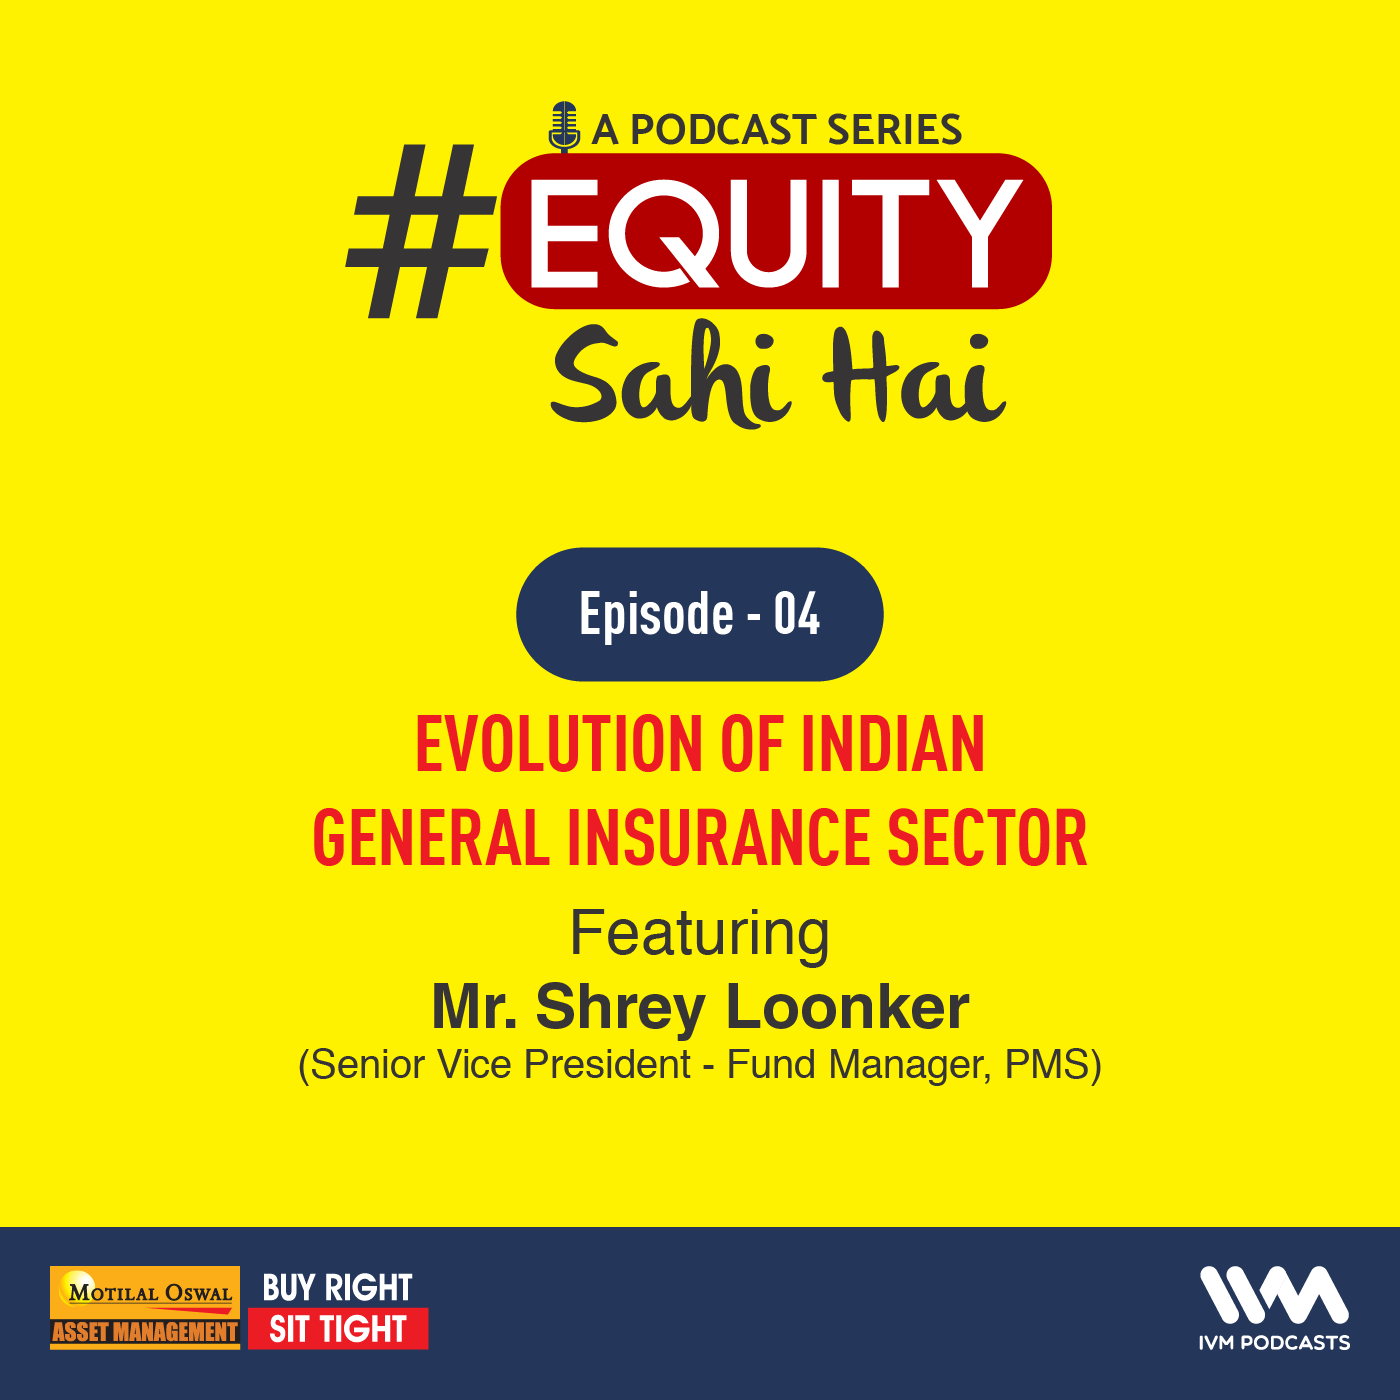 Ep. 04: Evolution of Indian General Insurance Sector